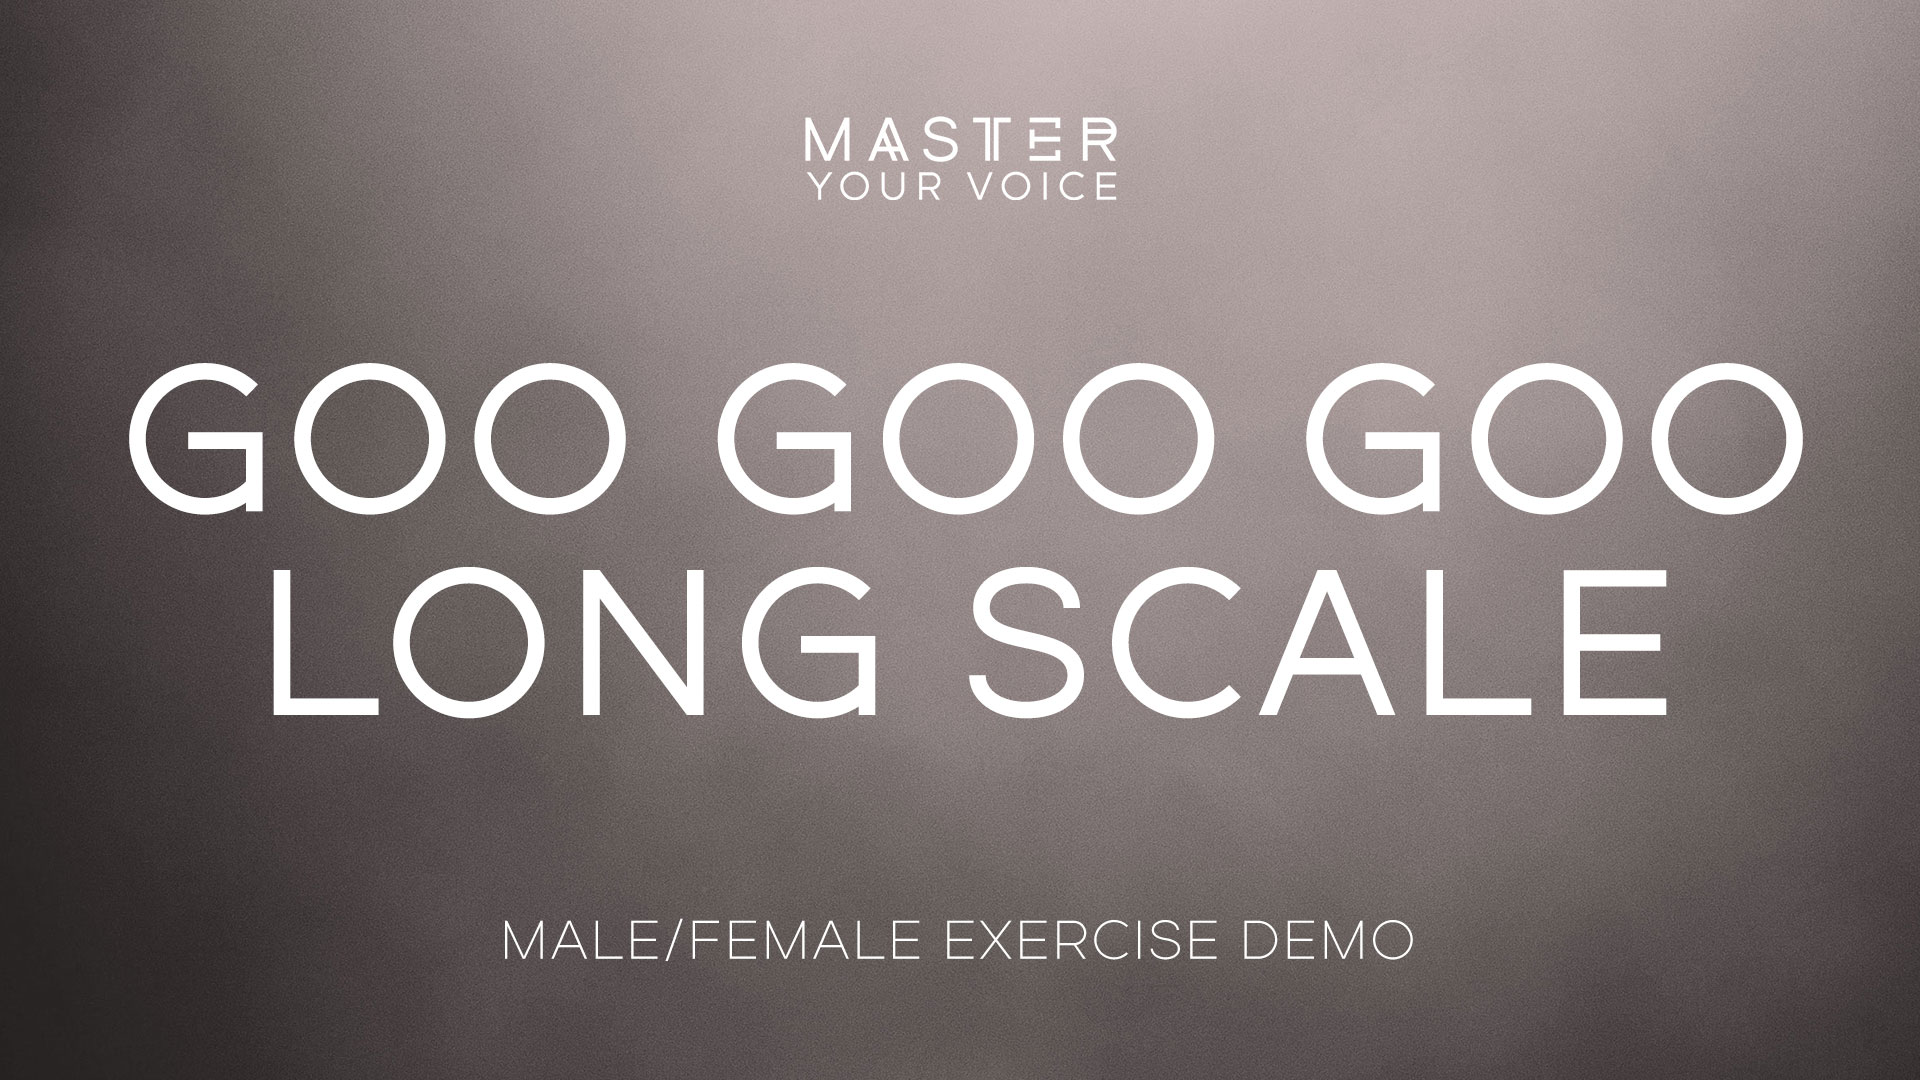 Goo Goo Goo Long Scale Exercise Demo